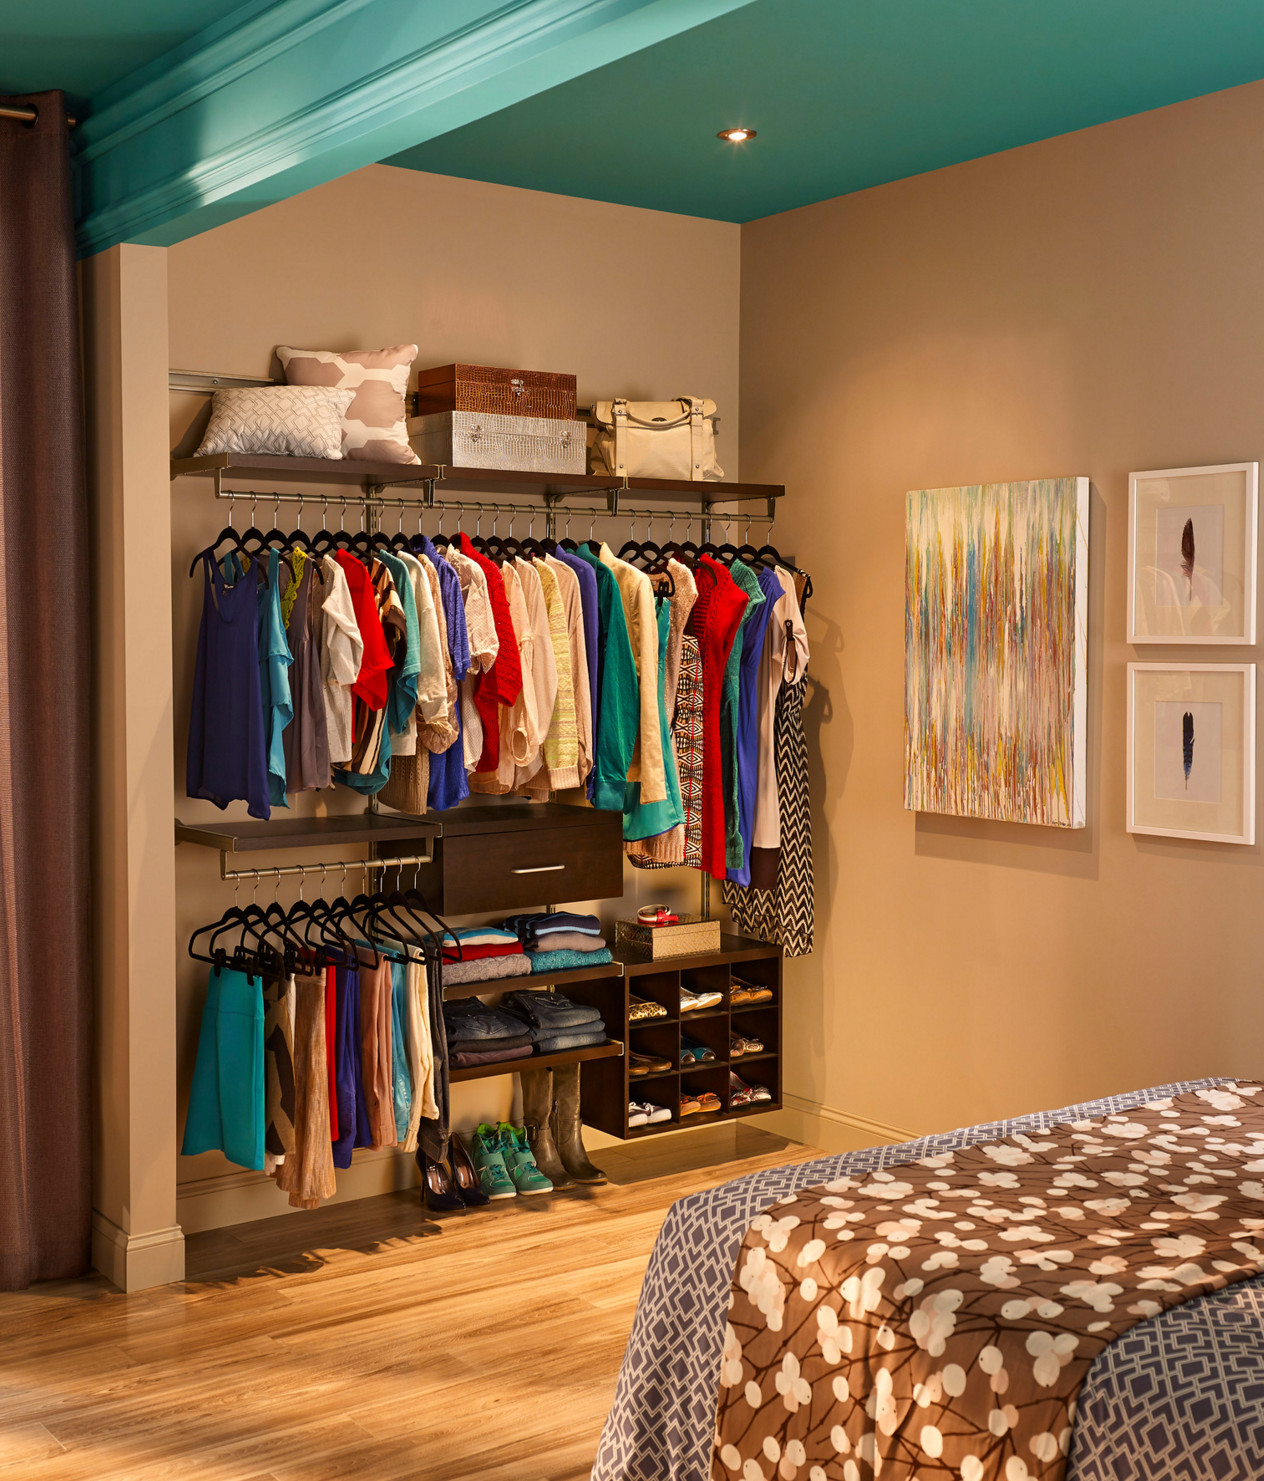 A Closet Story: Finding the Perfect One